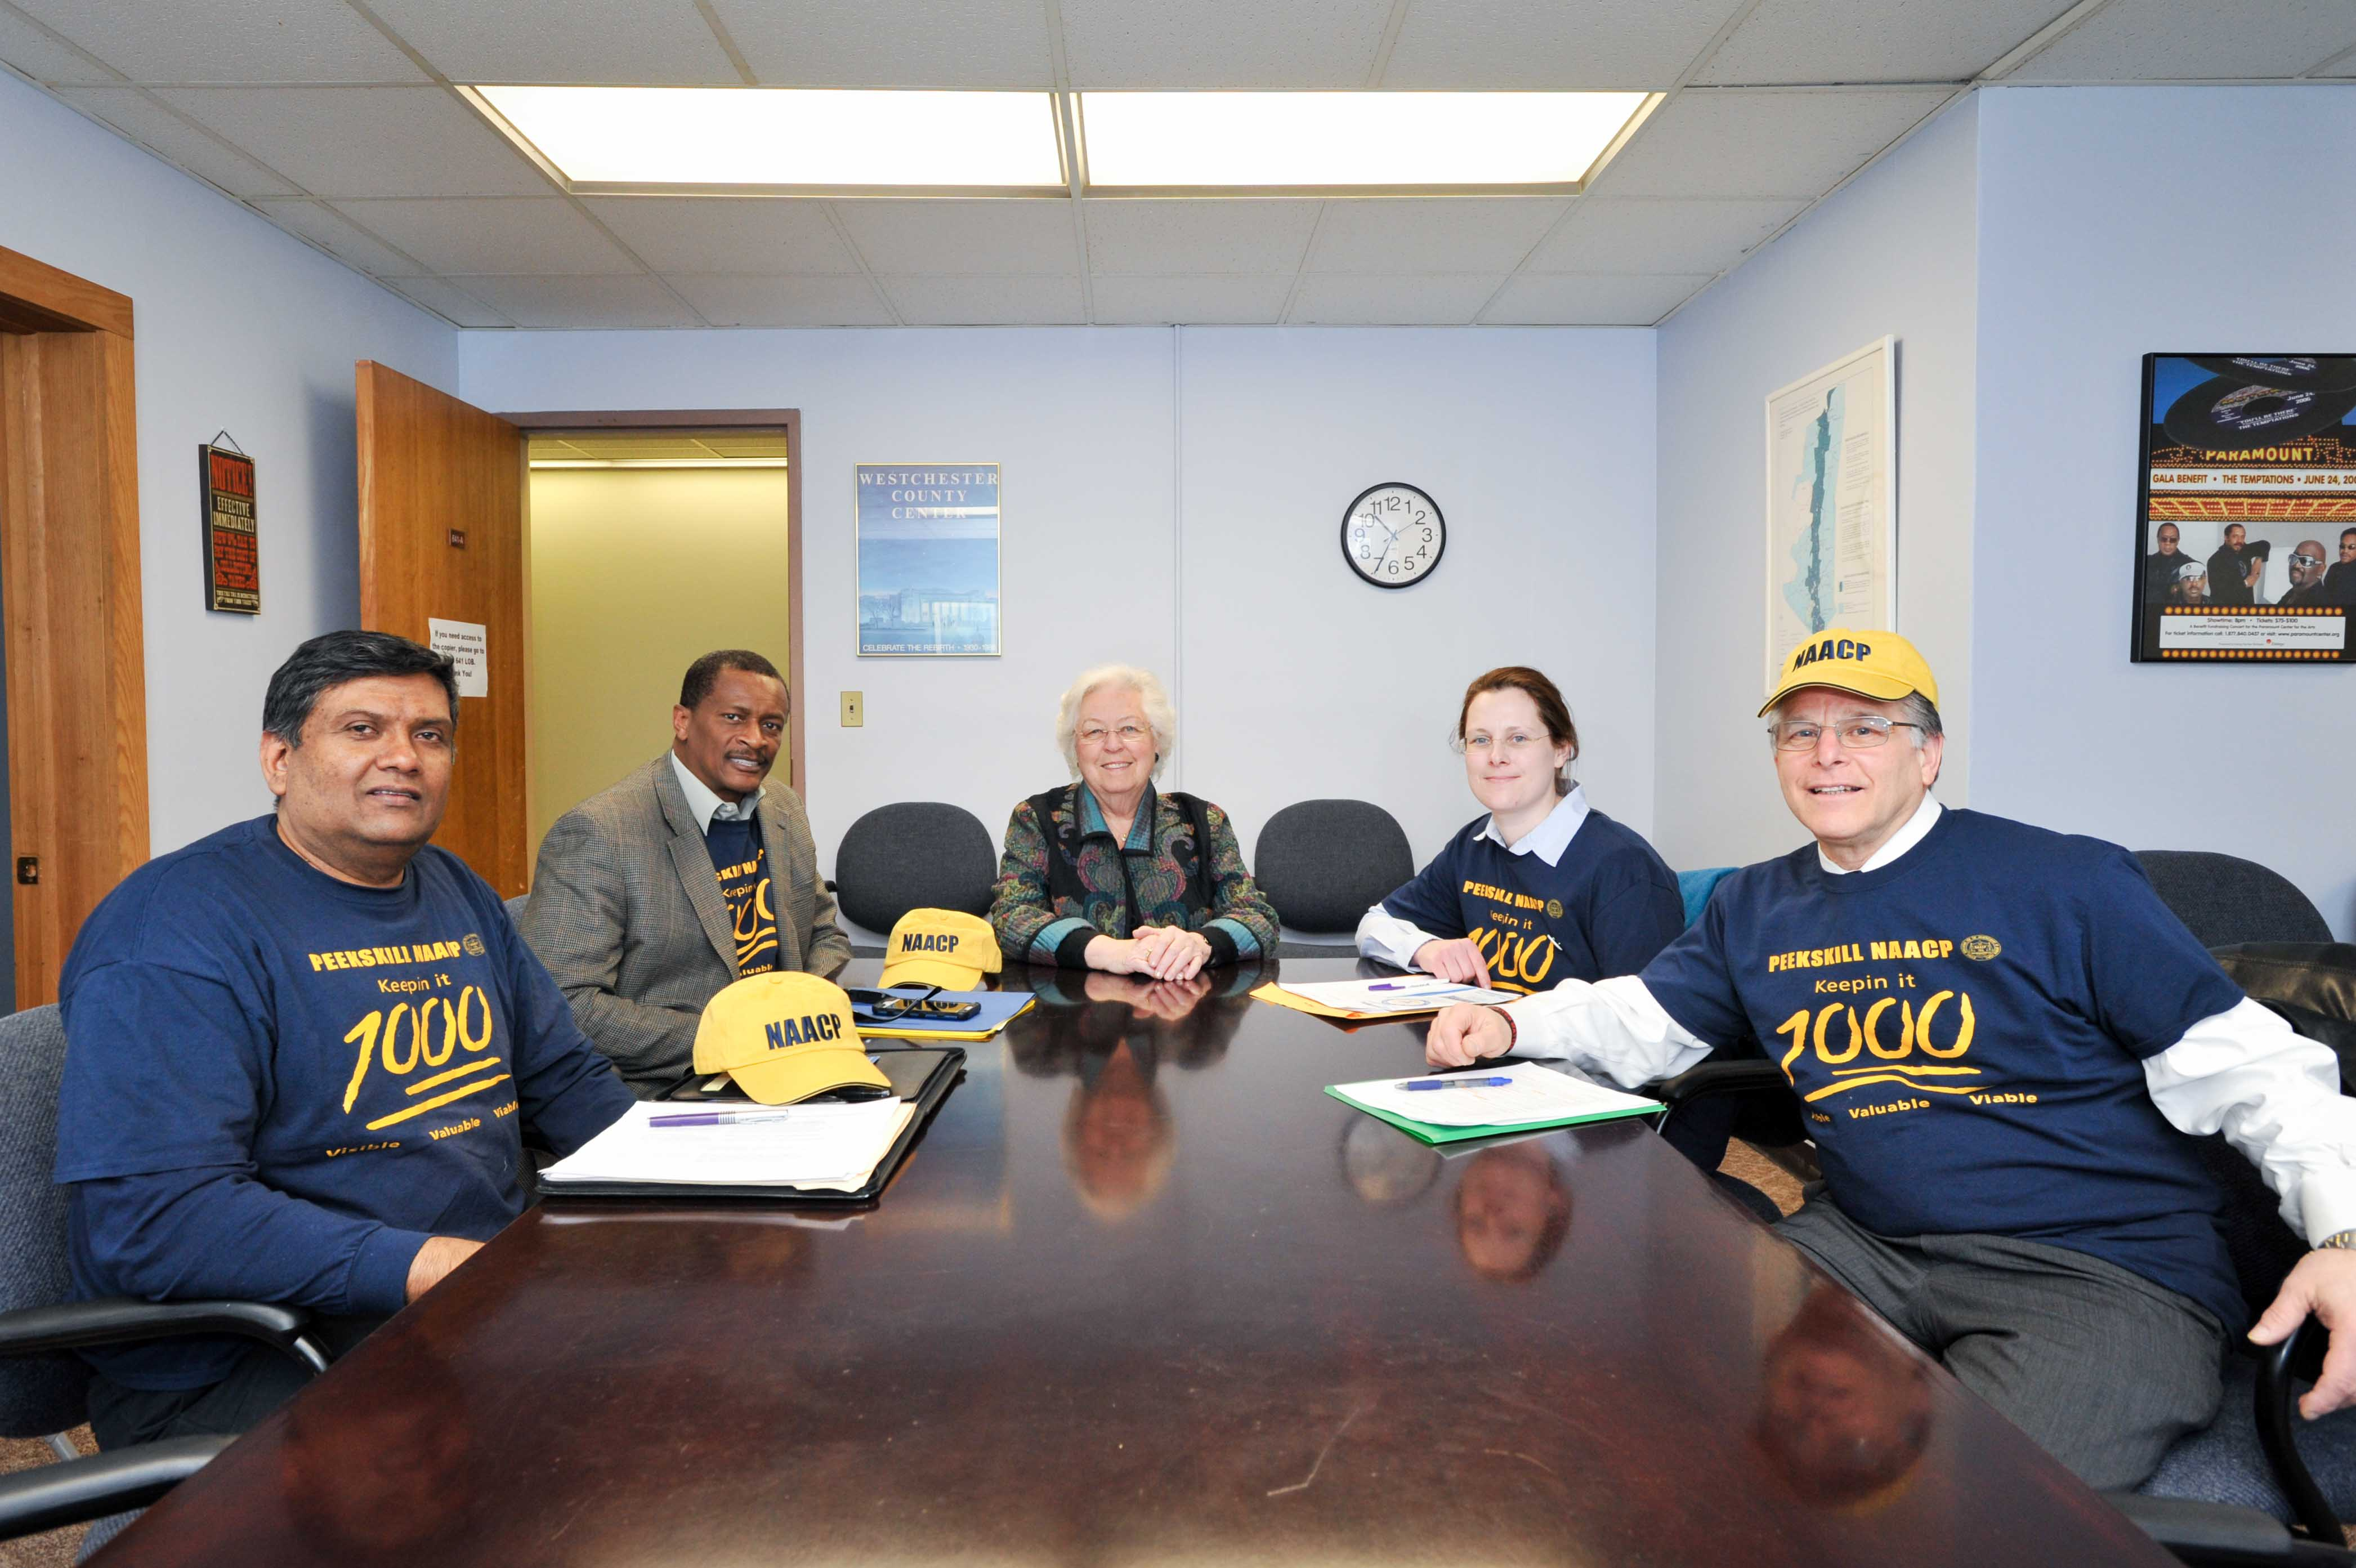 Sandy met with members of the Peekskill NAACP during the session